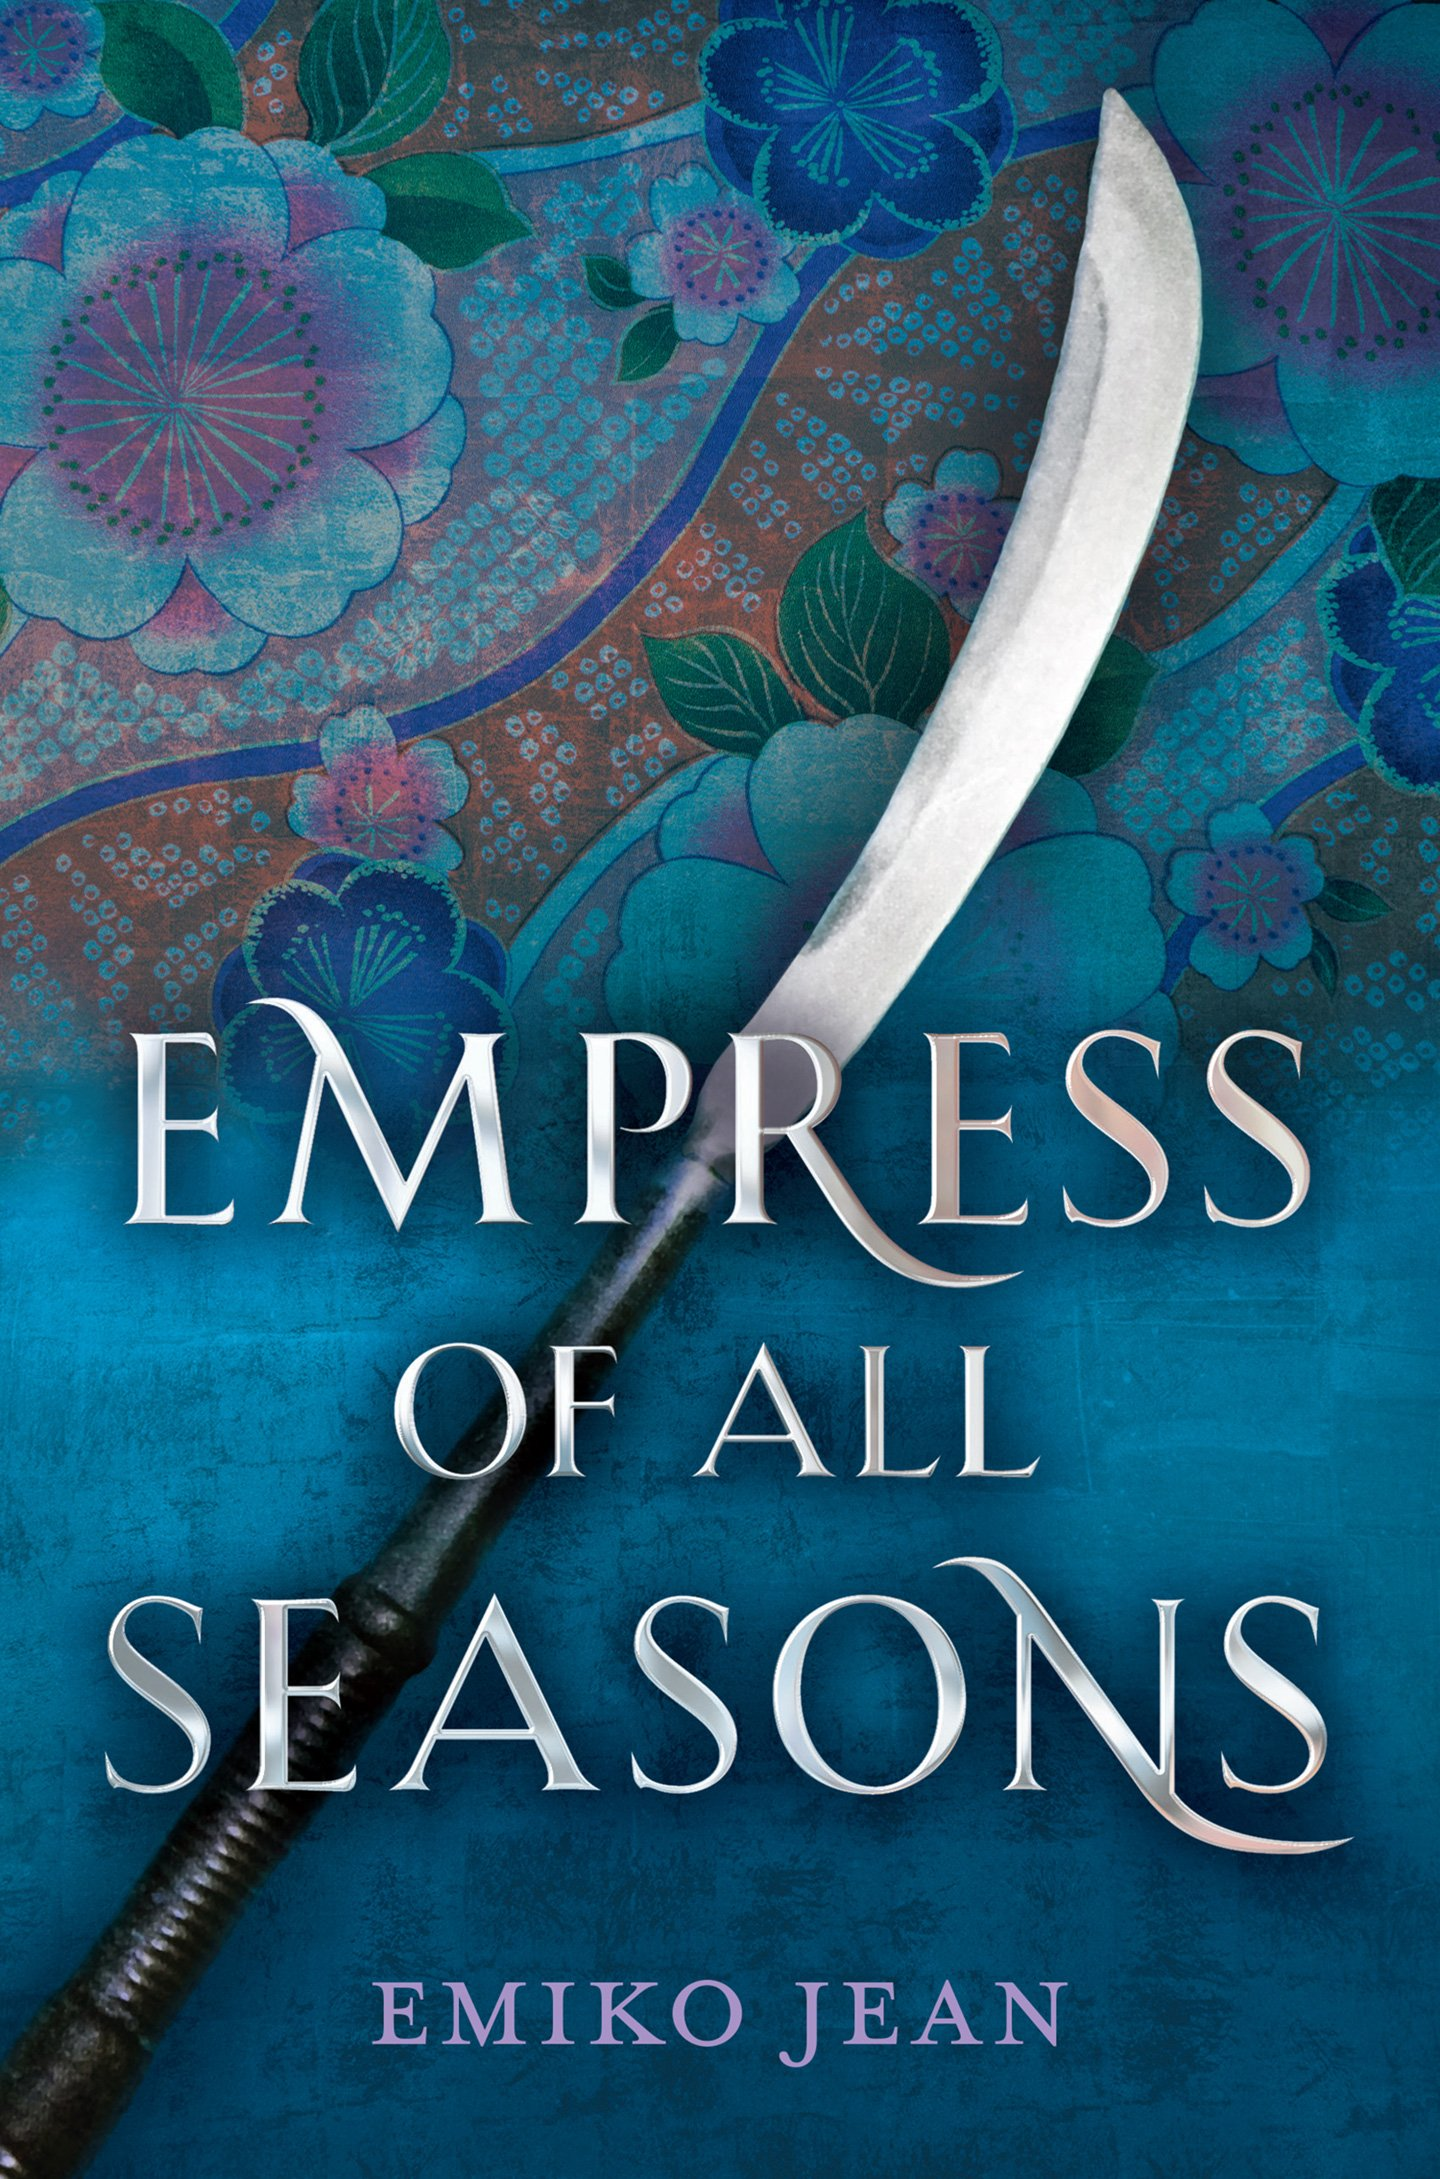 Amazon.com: Empress of All Seasons (9780544530942): Jean, Emiko: Books